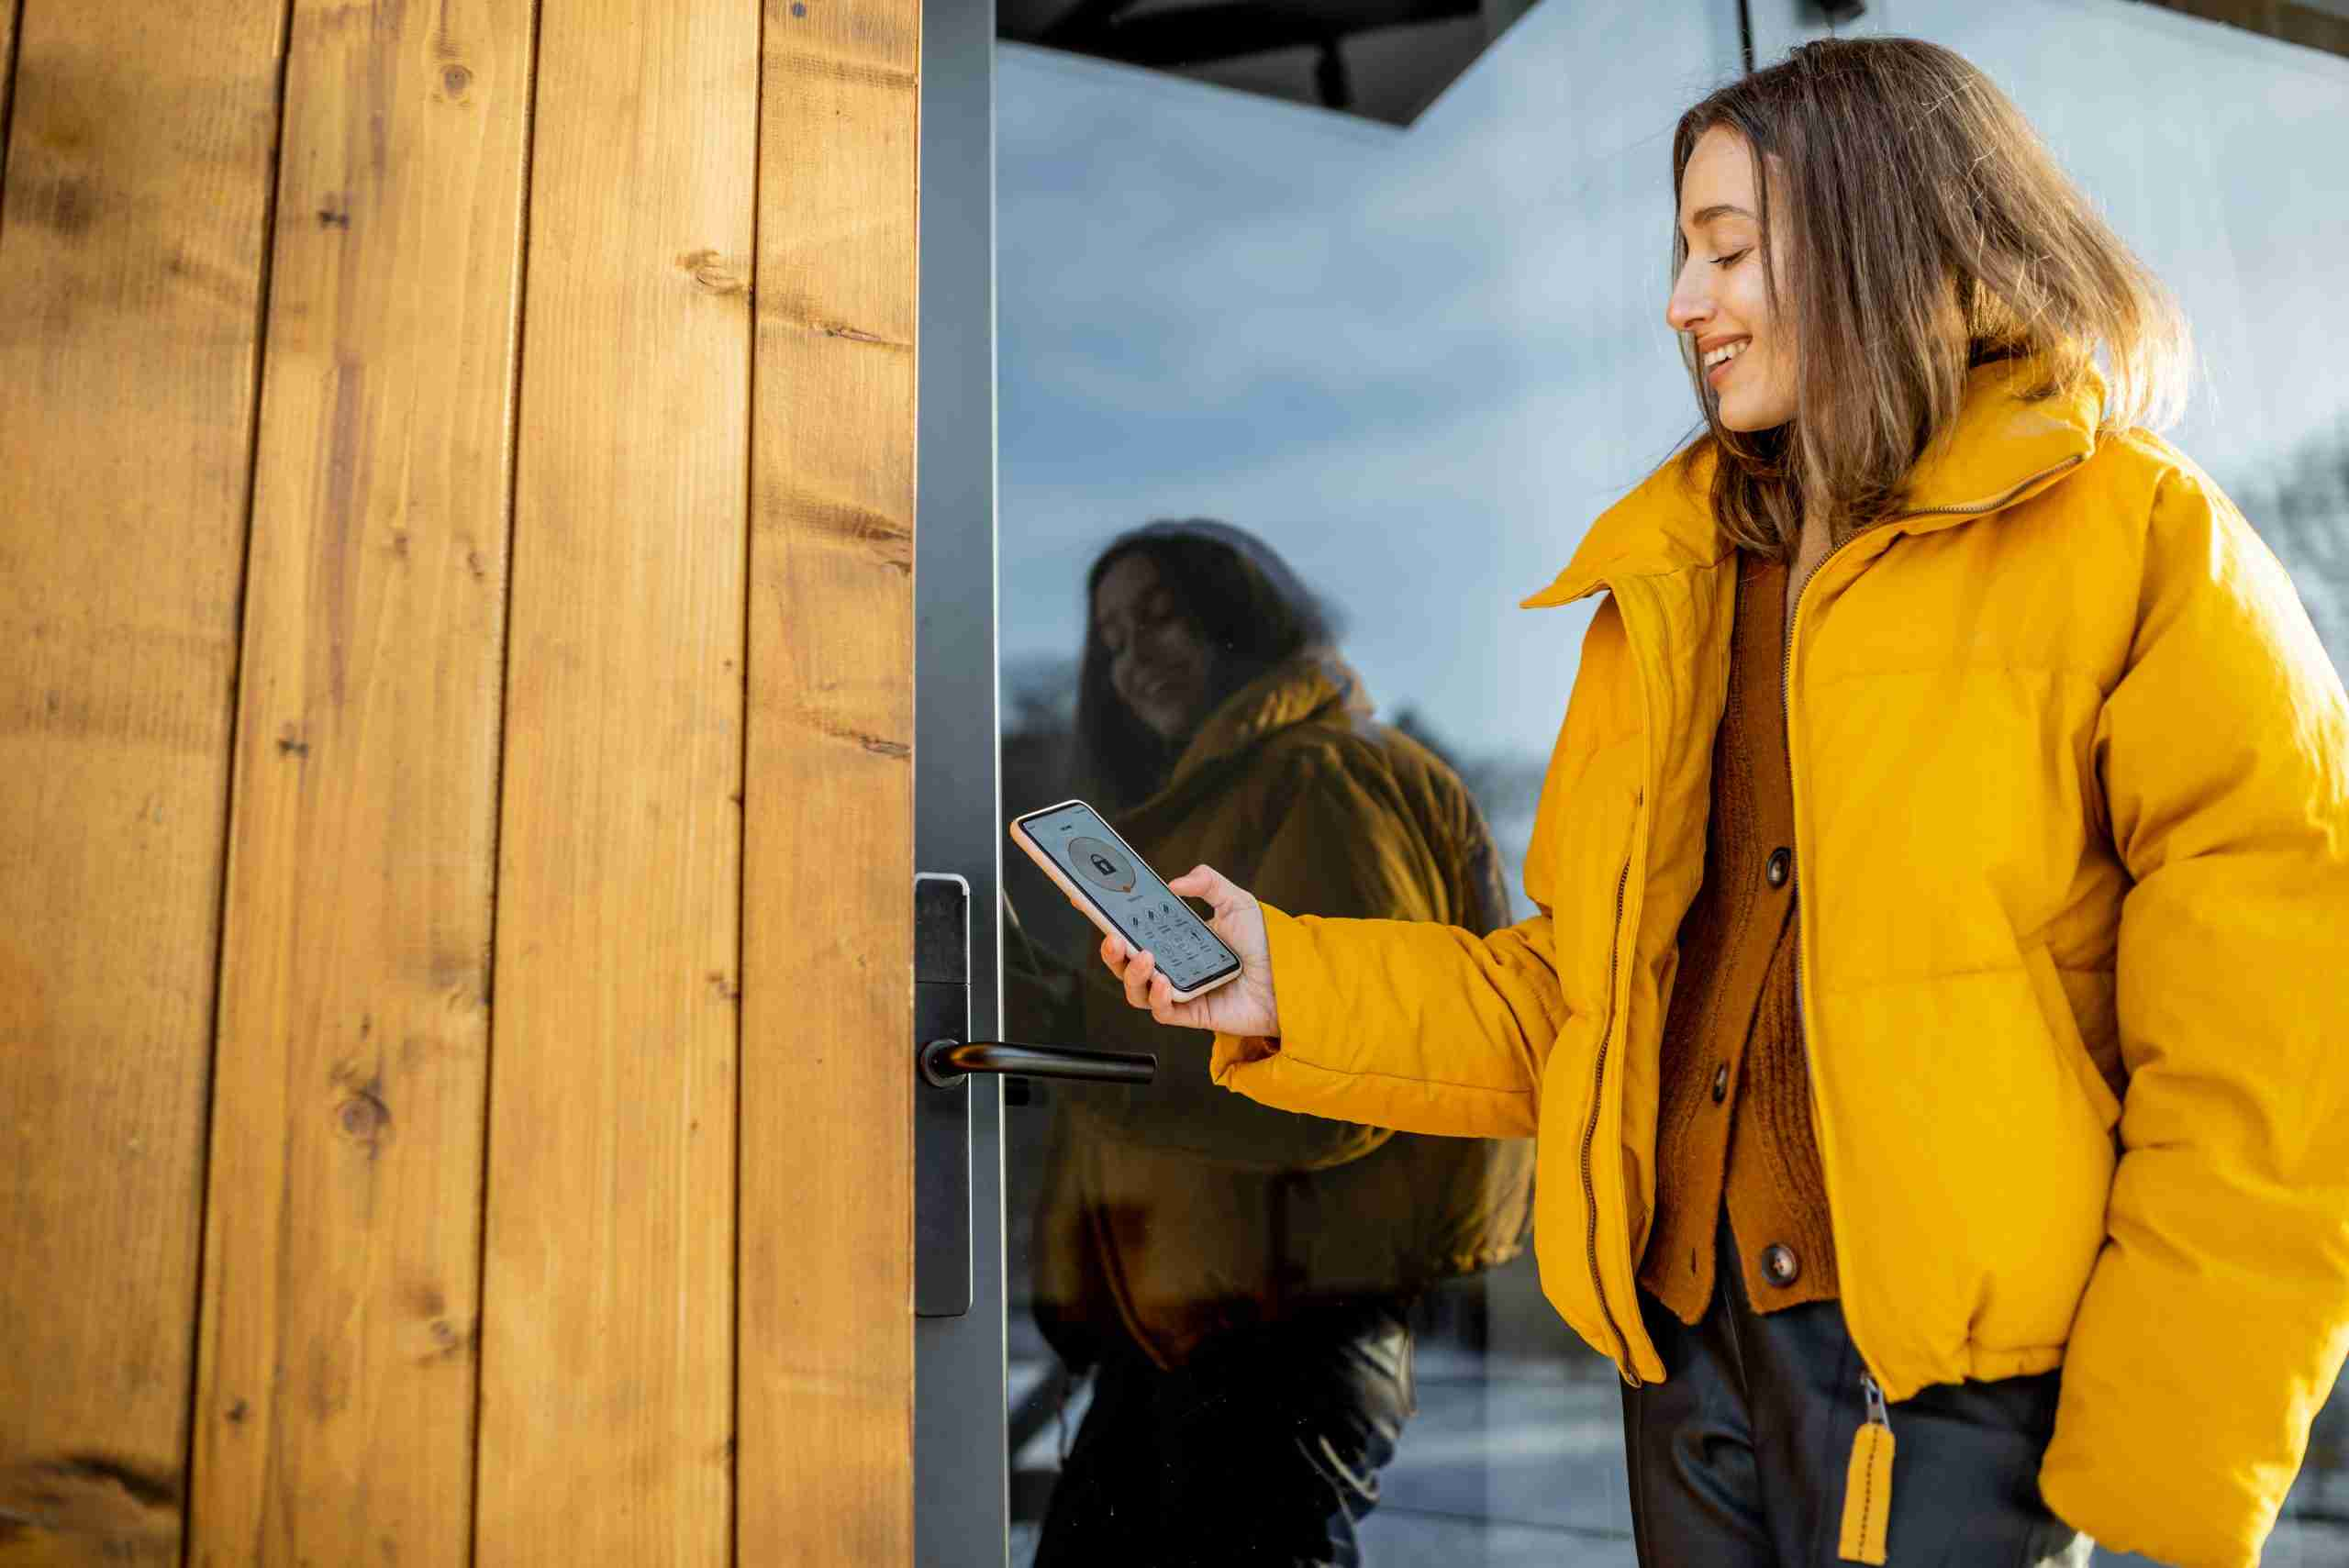 A woman manages her smart lock from her phone